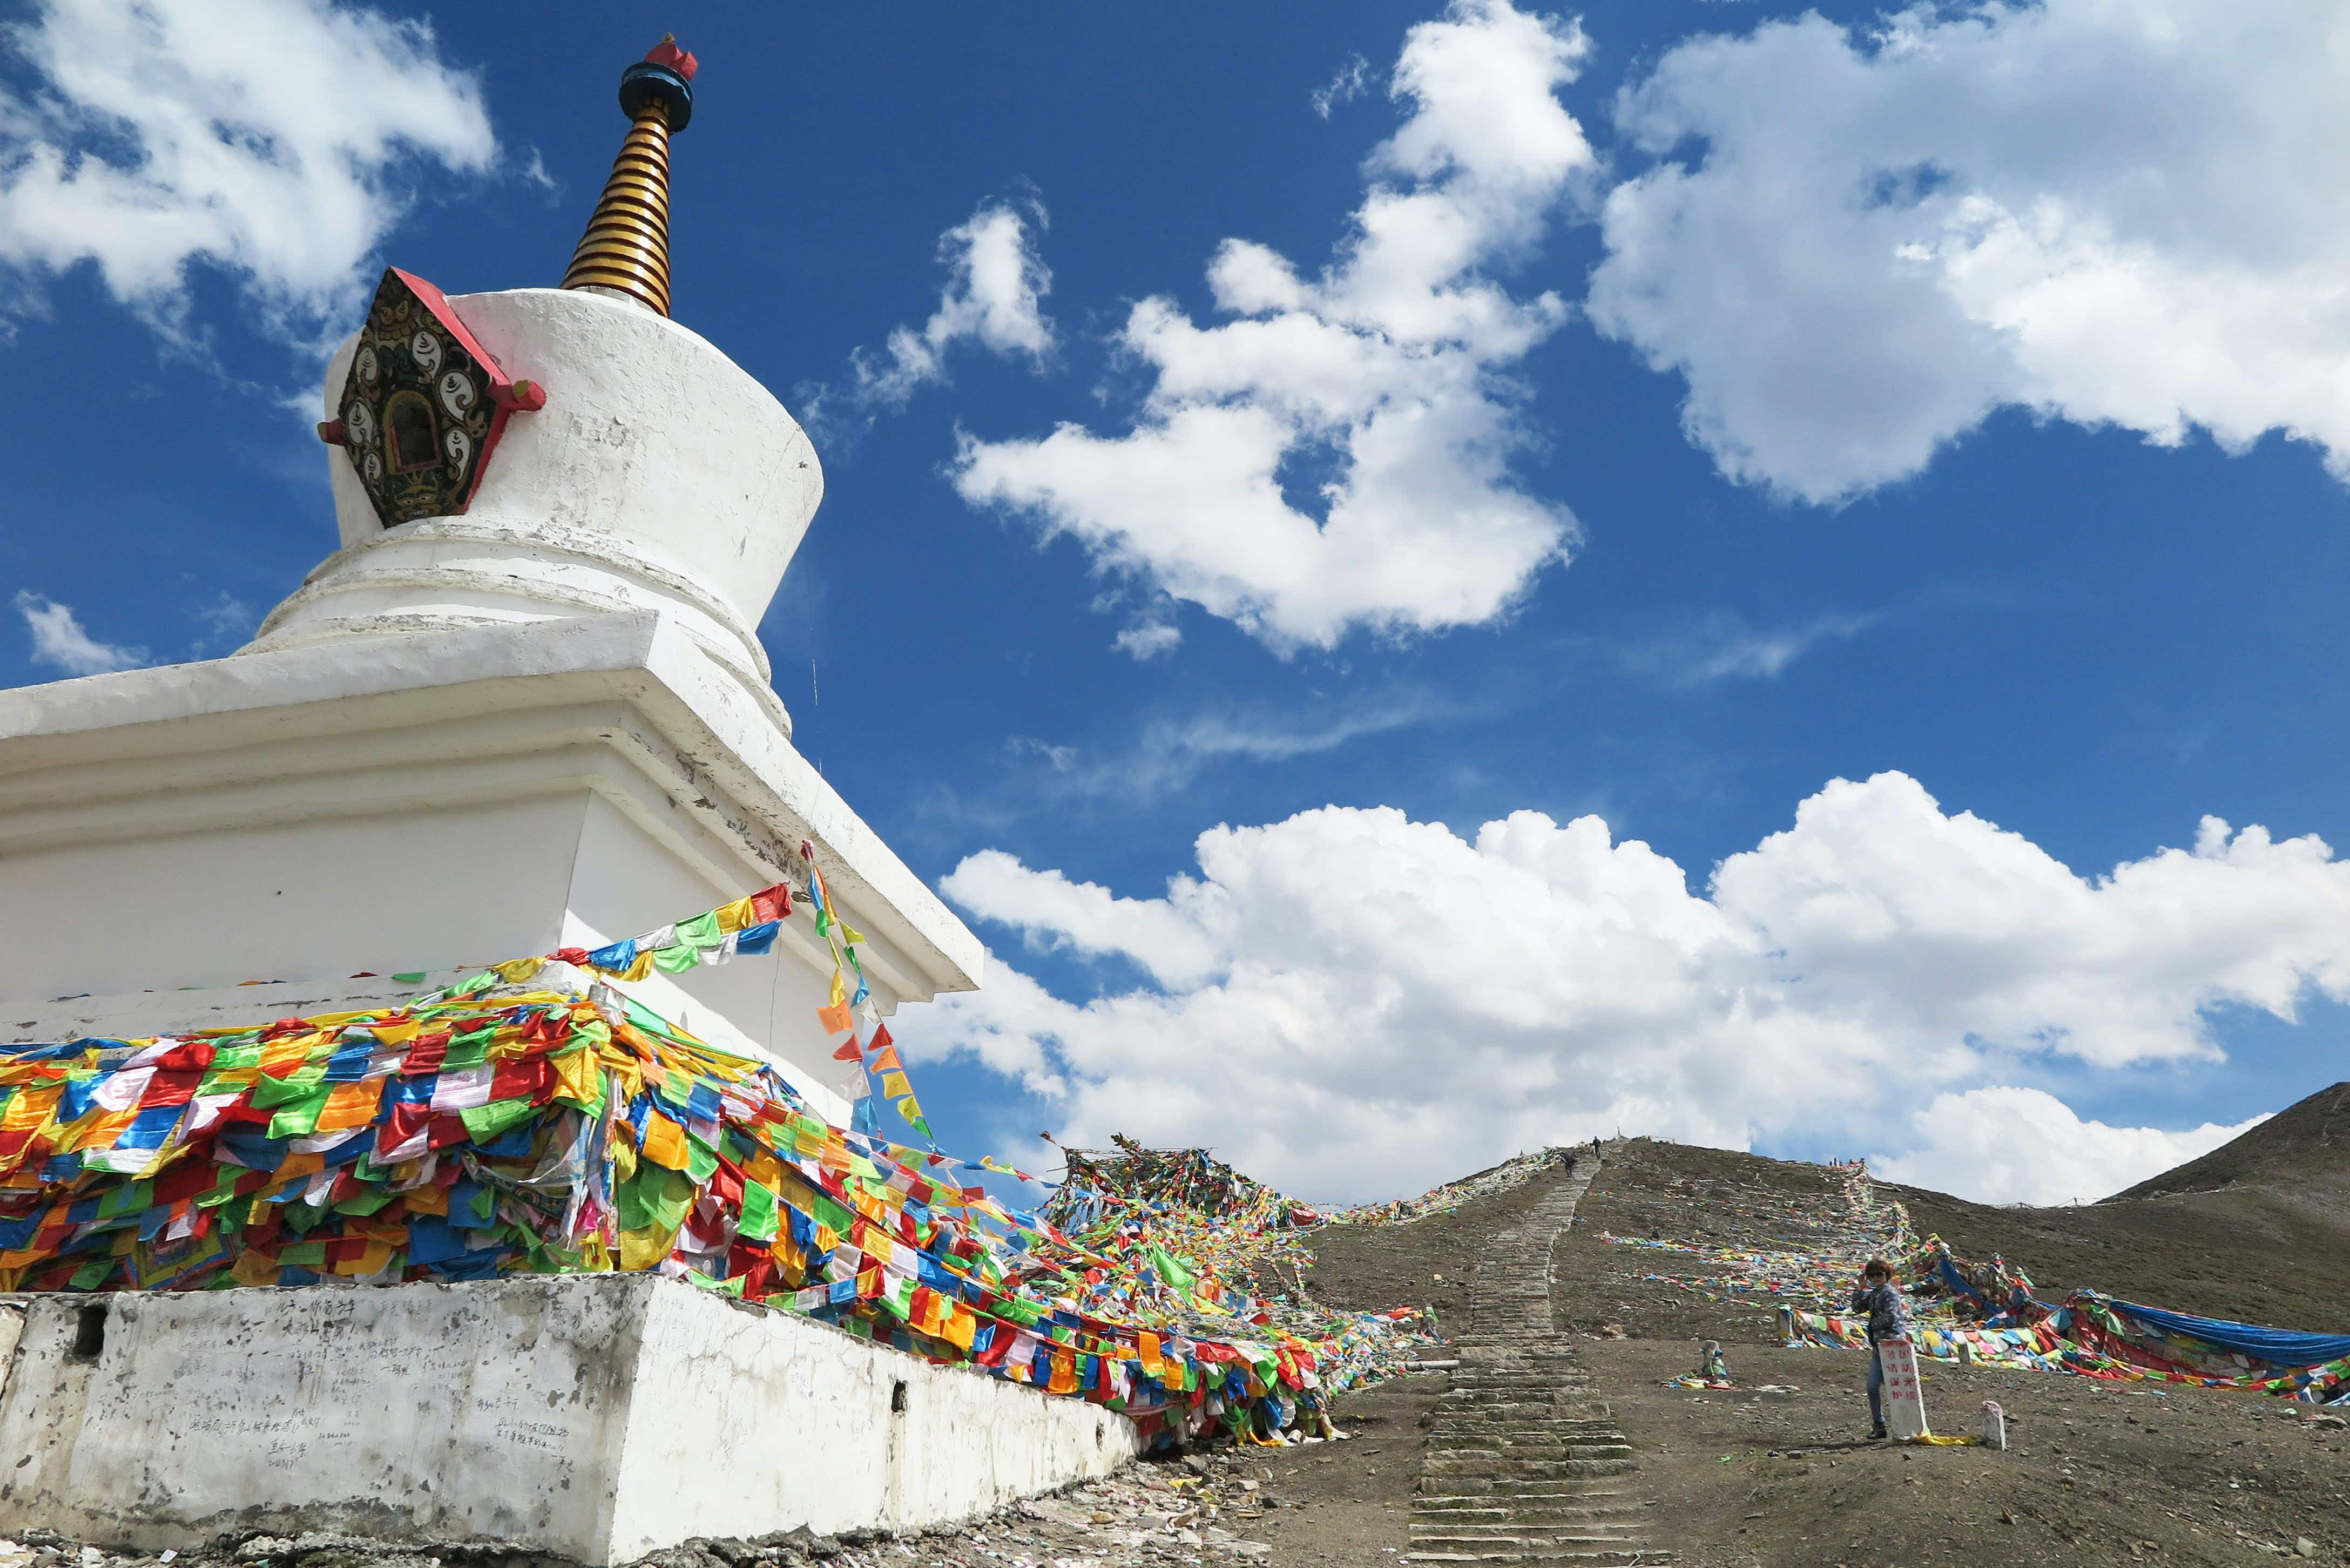 Another view from the roof of the world: alternative Tibet in Sichuan